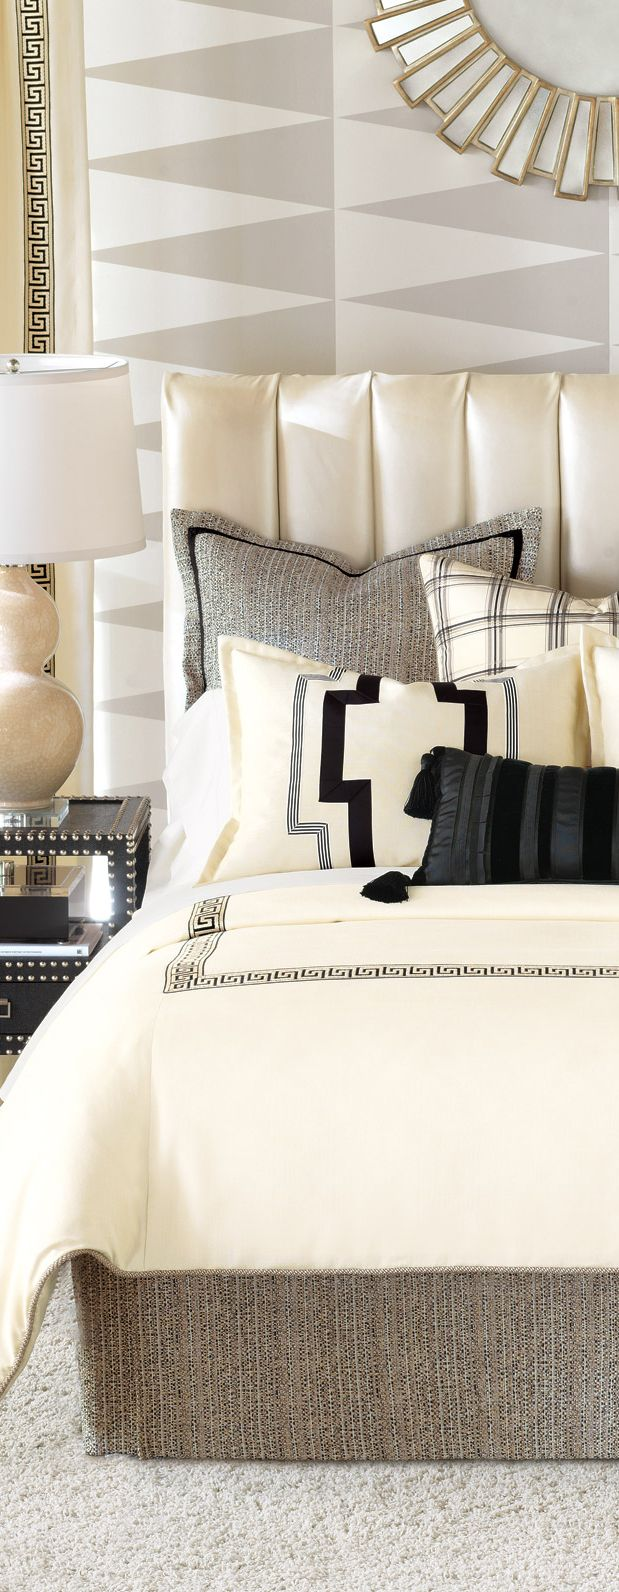 Master Bedroom Bedding Sets 17 Best Images About Luxury Bedding Sets On Pinterest Pine Cone